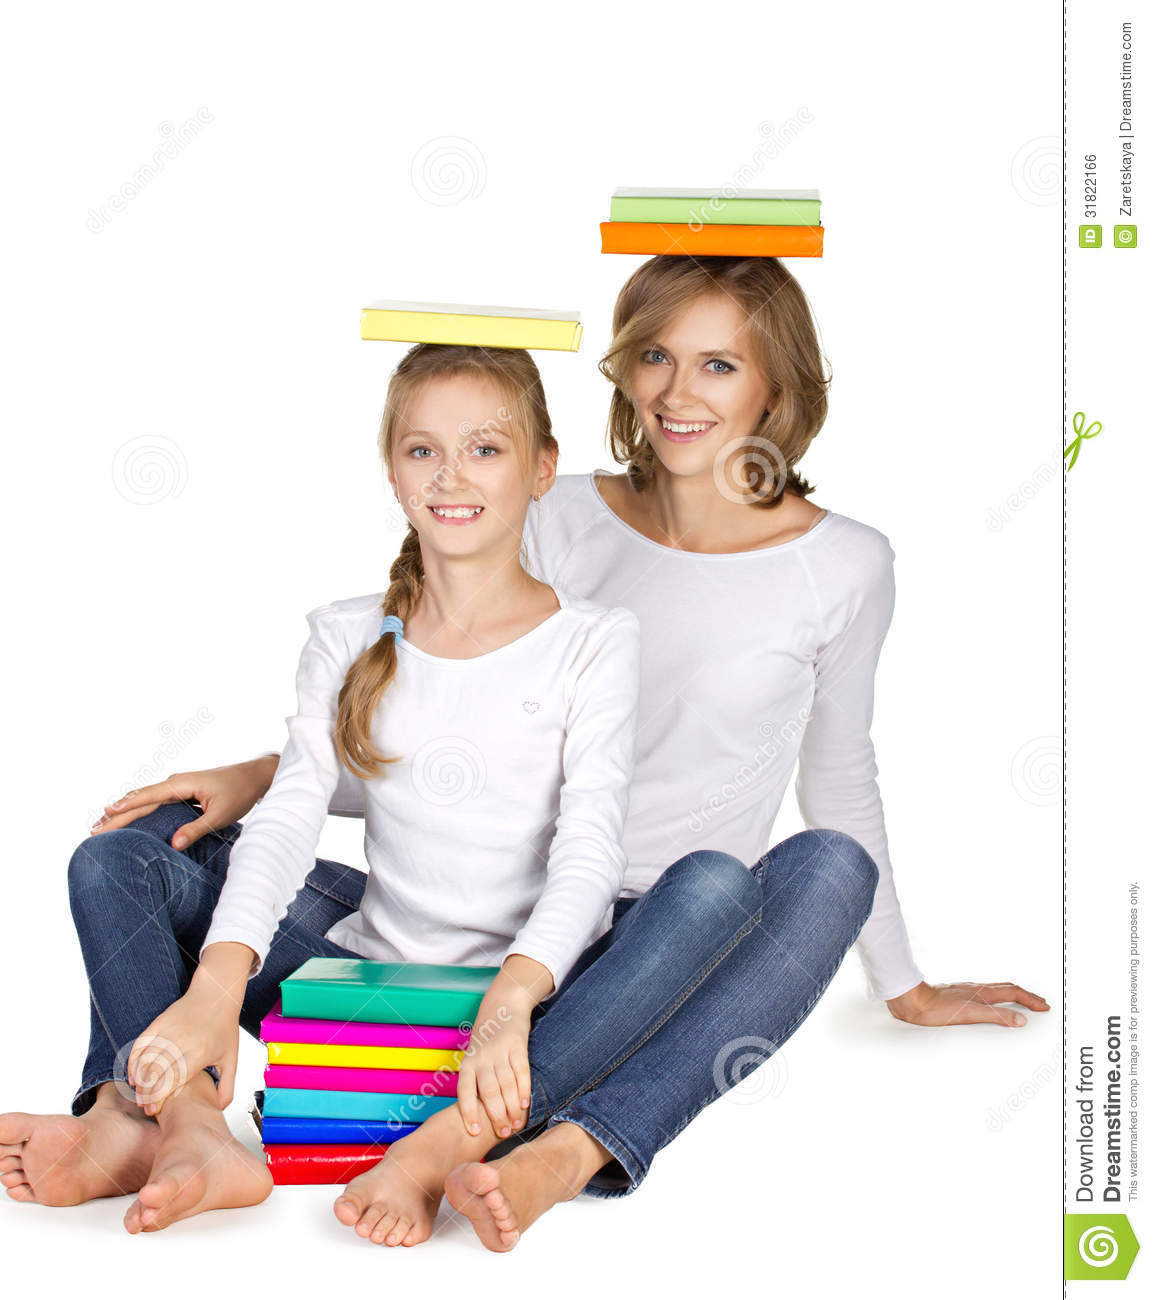 Mother and daughter sitting on the floor with books on heard